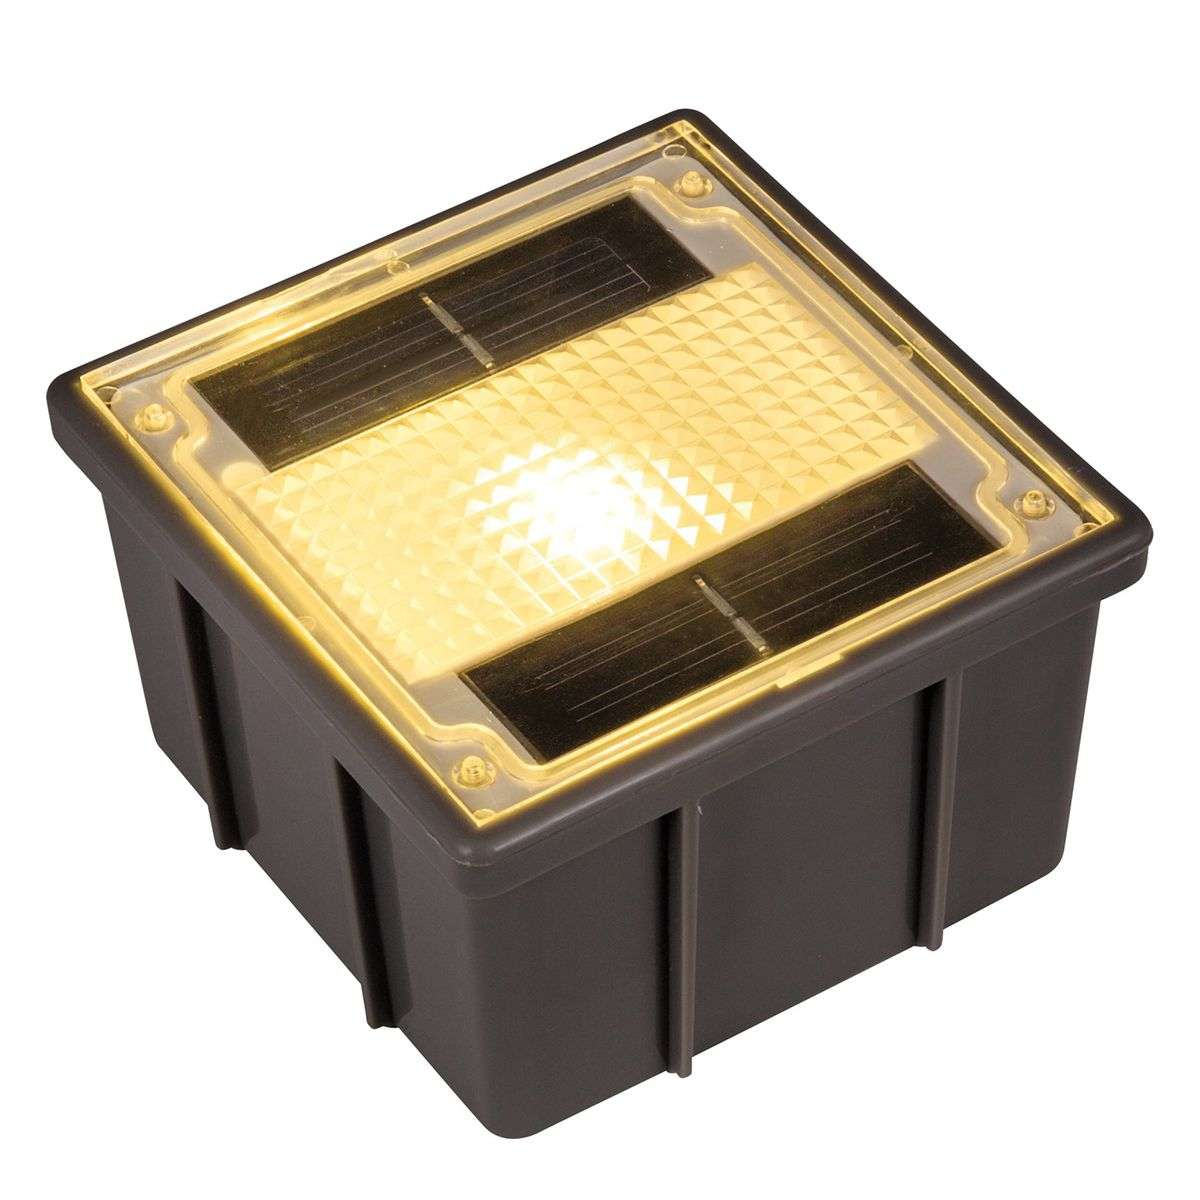 Solar recessed floor light paving stone with led lights solar recessed floor light paving stone with led 9506113 31 mozeypictures Images